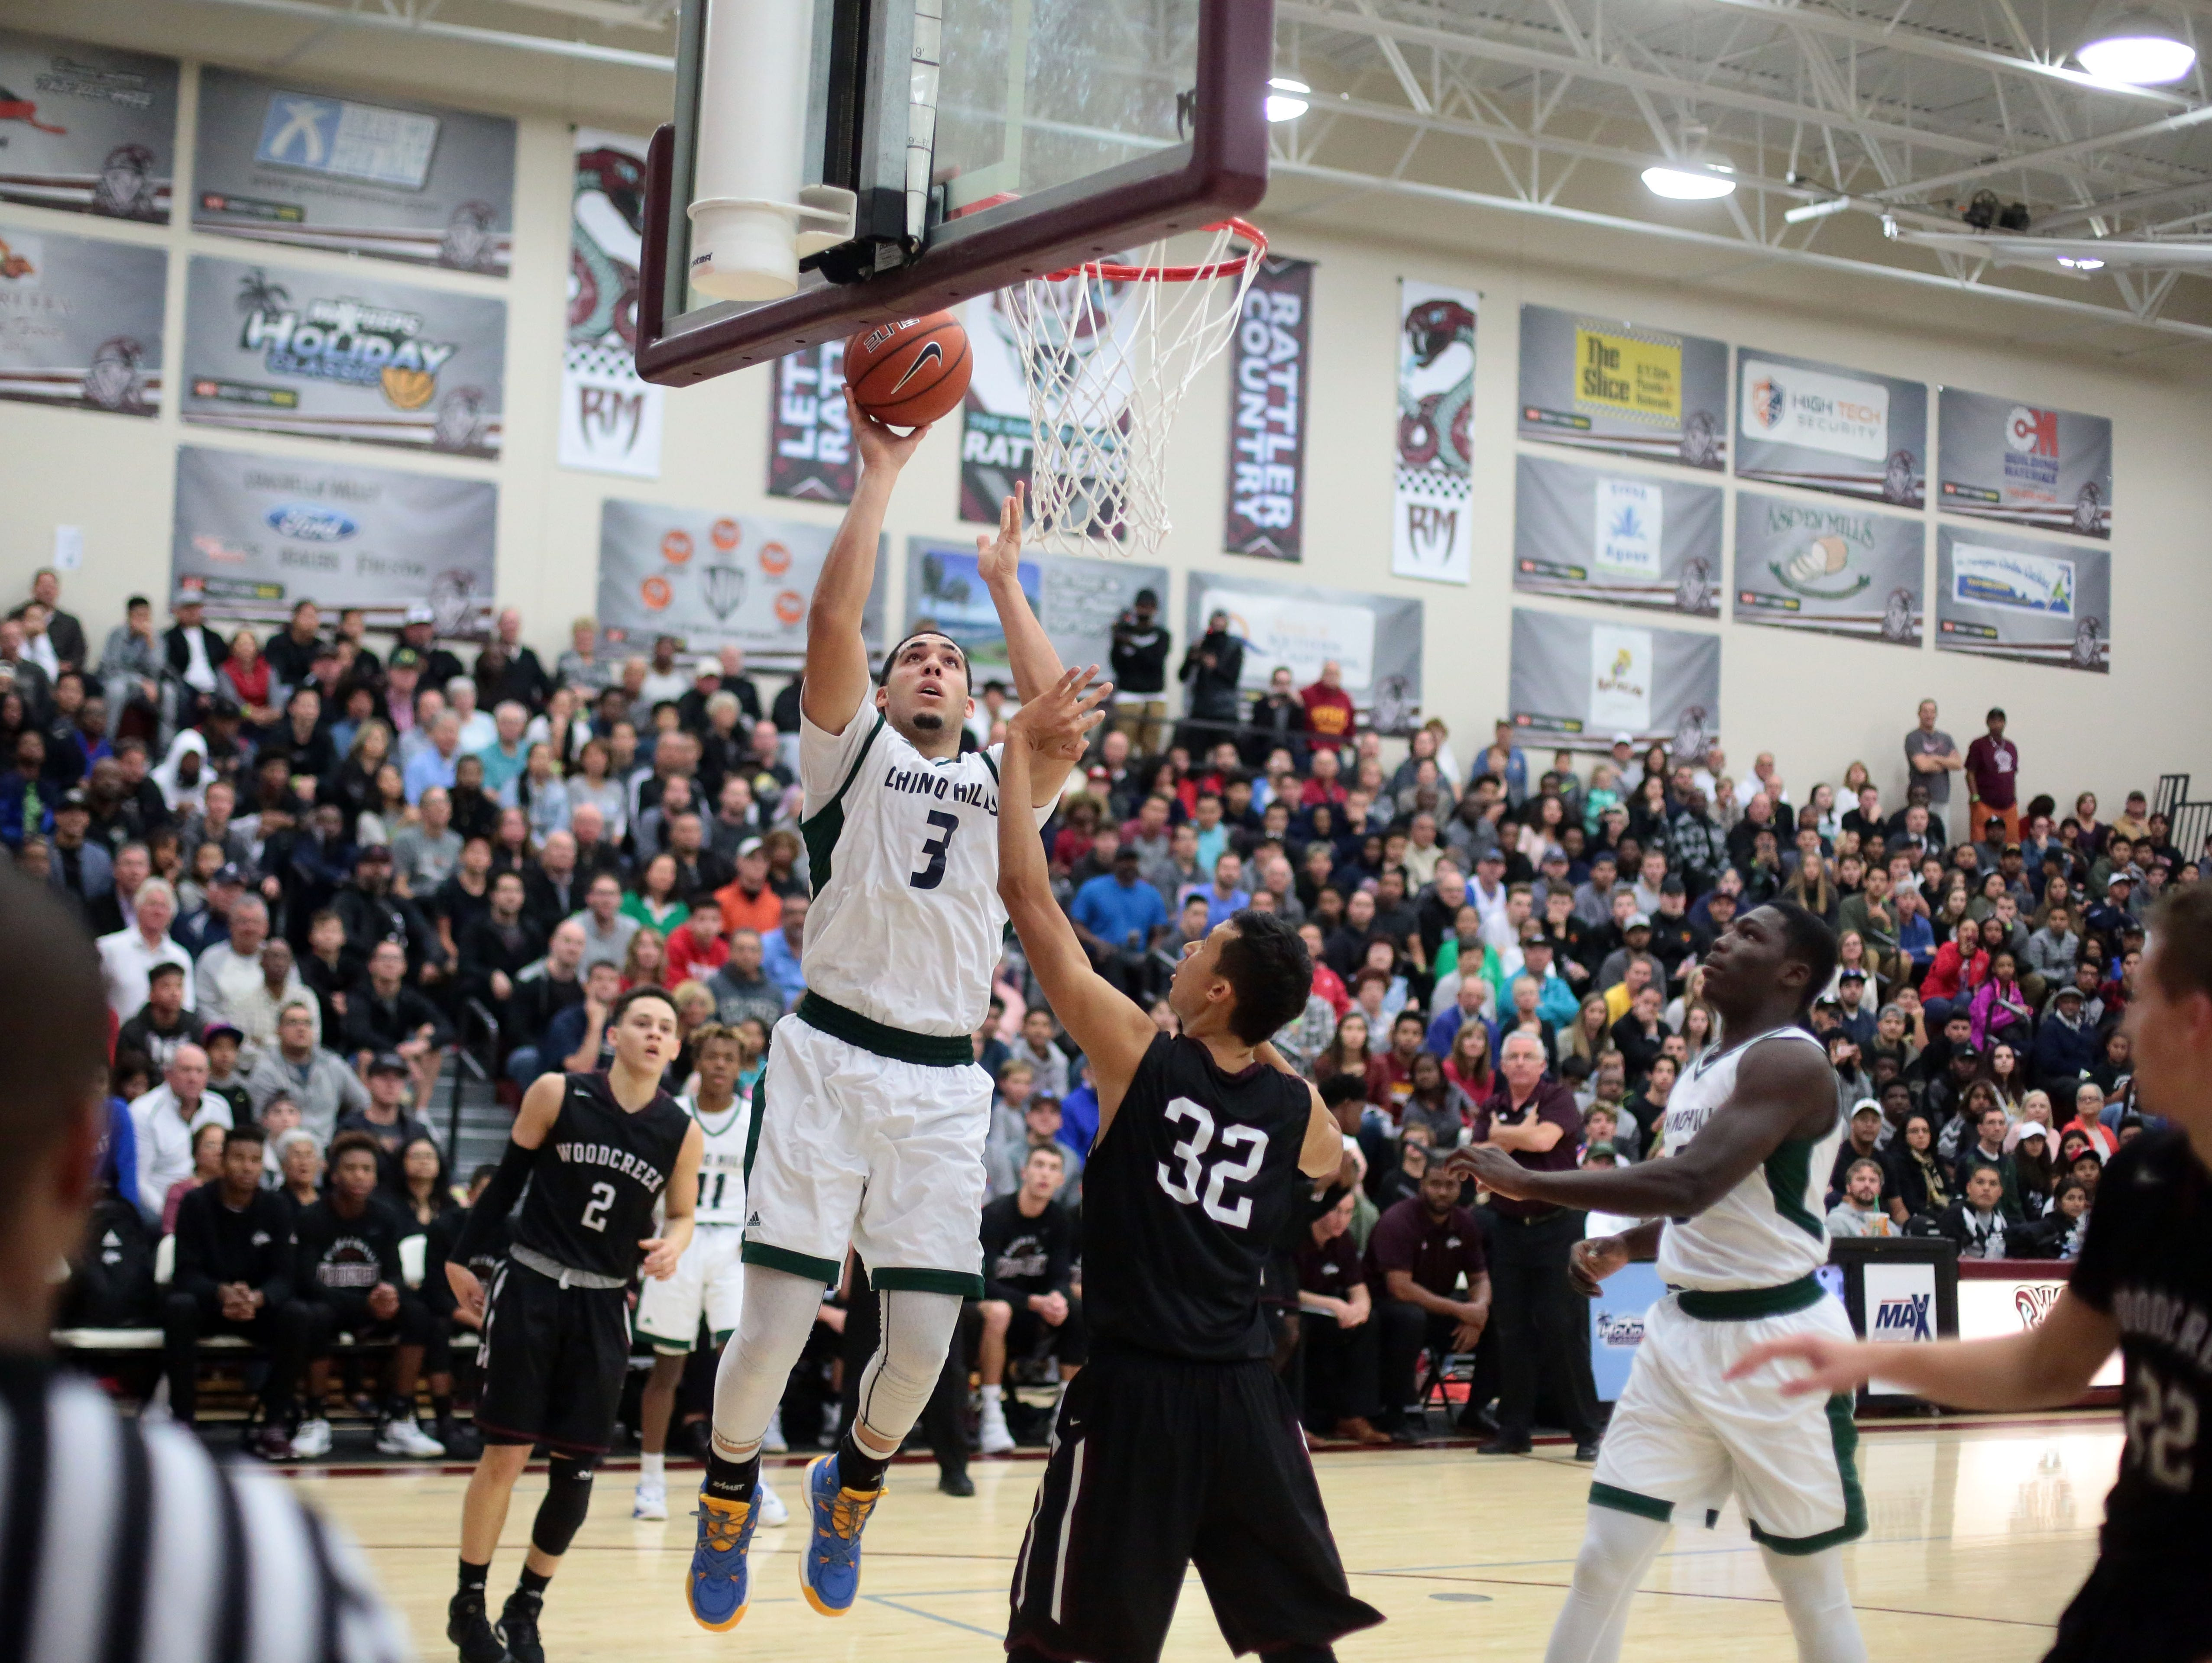 Chino Hills' LiAngelo Ball in action against Woodcreek on Wednesday, December 28, 2016 during the Rancho Mirage Holiday Invitational at Rancho Mirage High School.